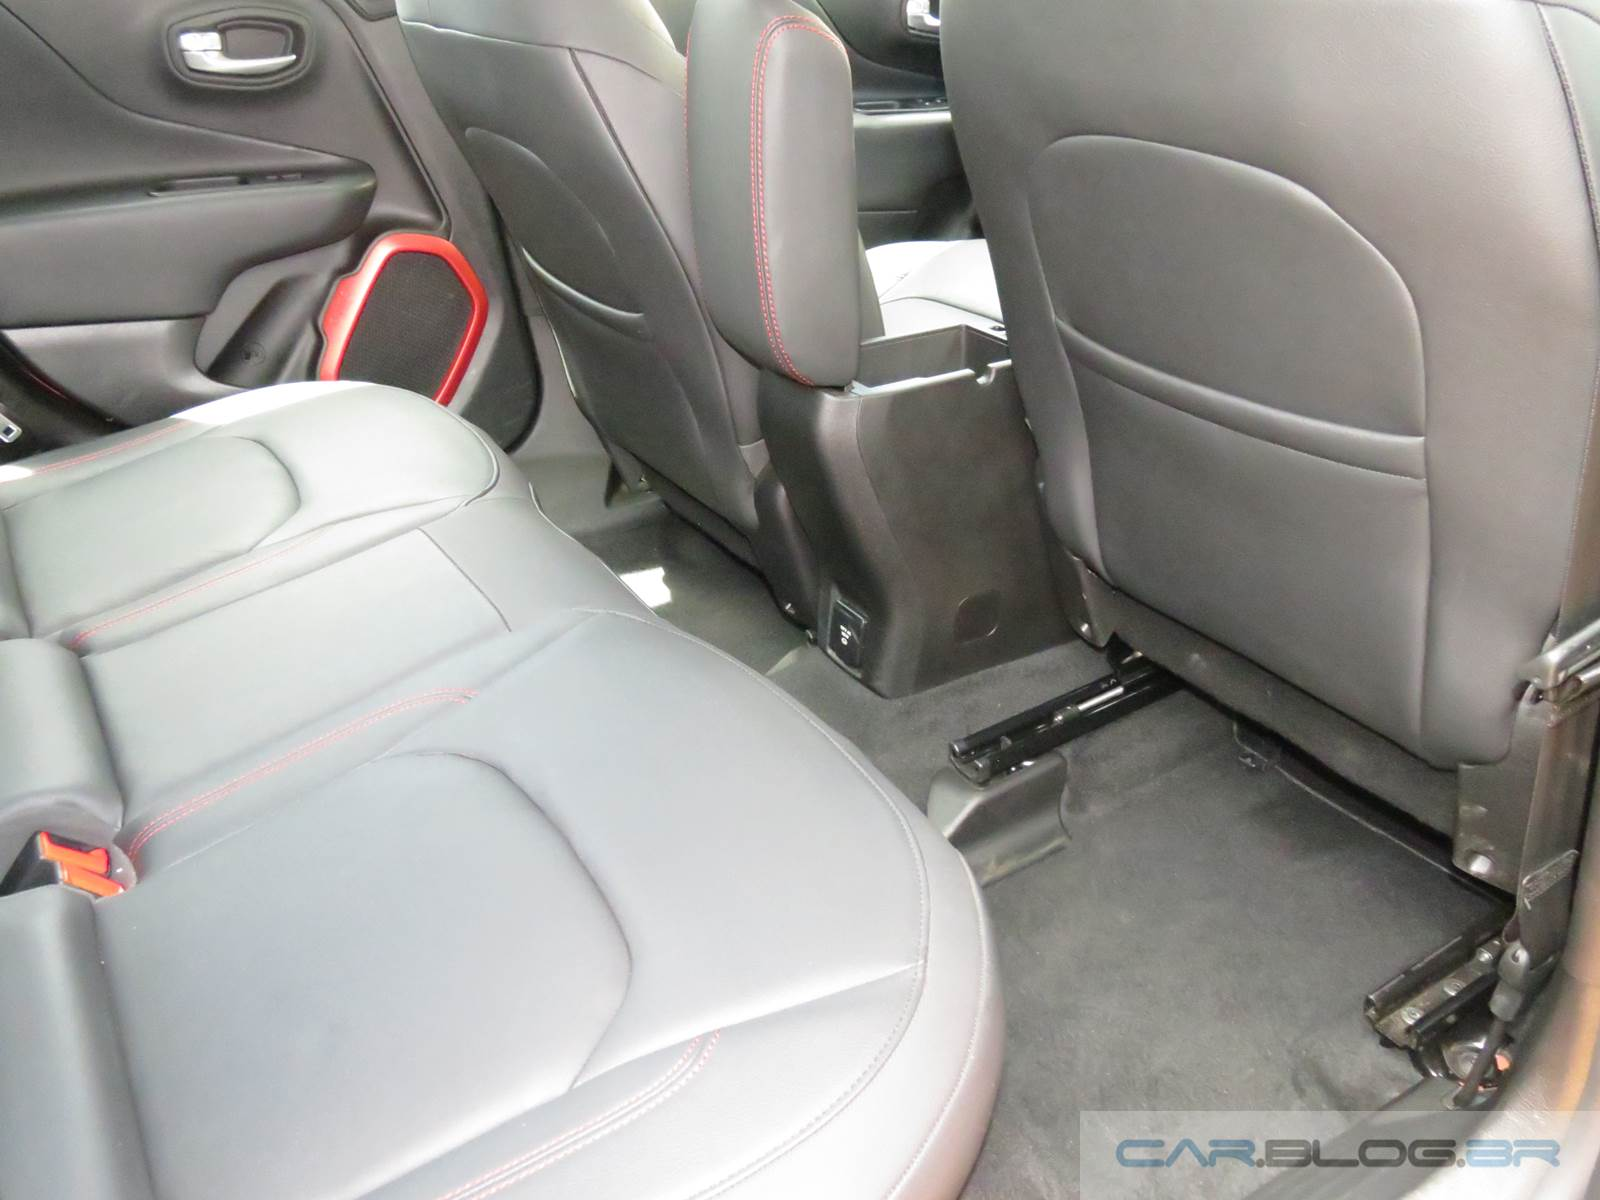 Jeep Renegade 4x4 Diesel Trailhawk - interior